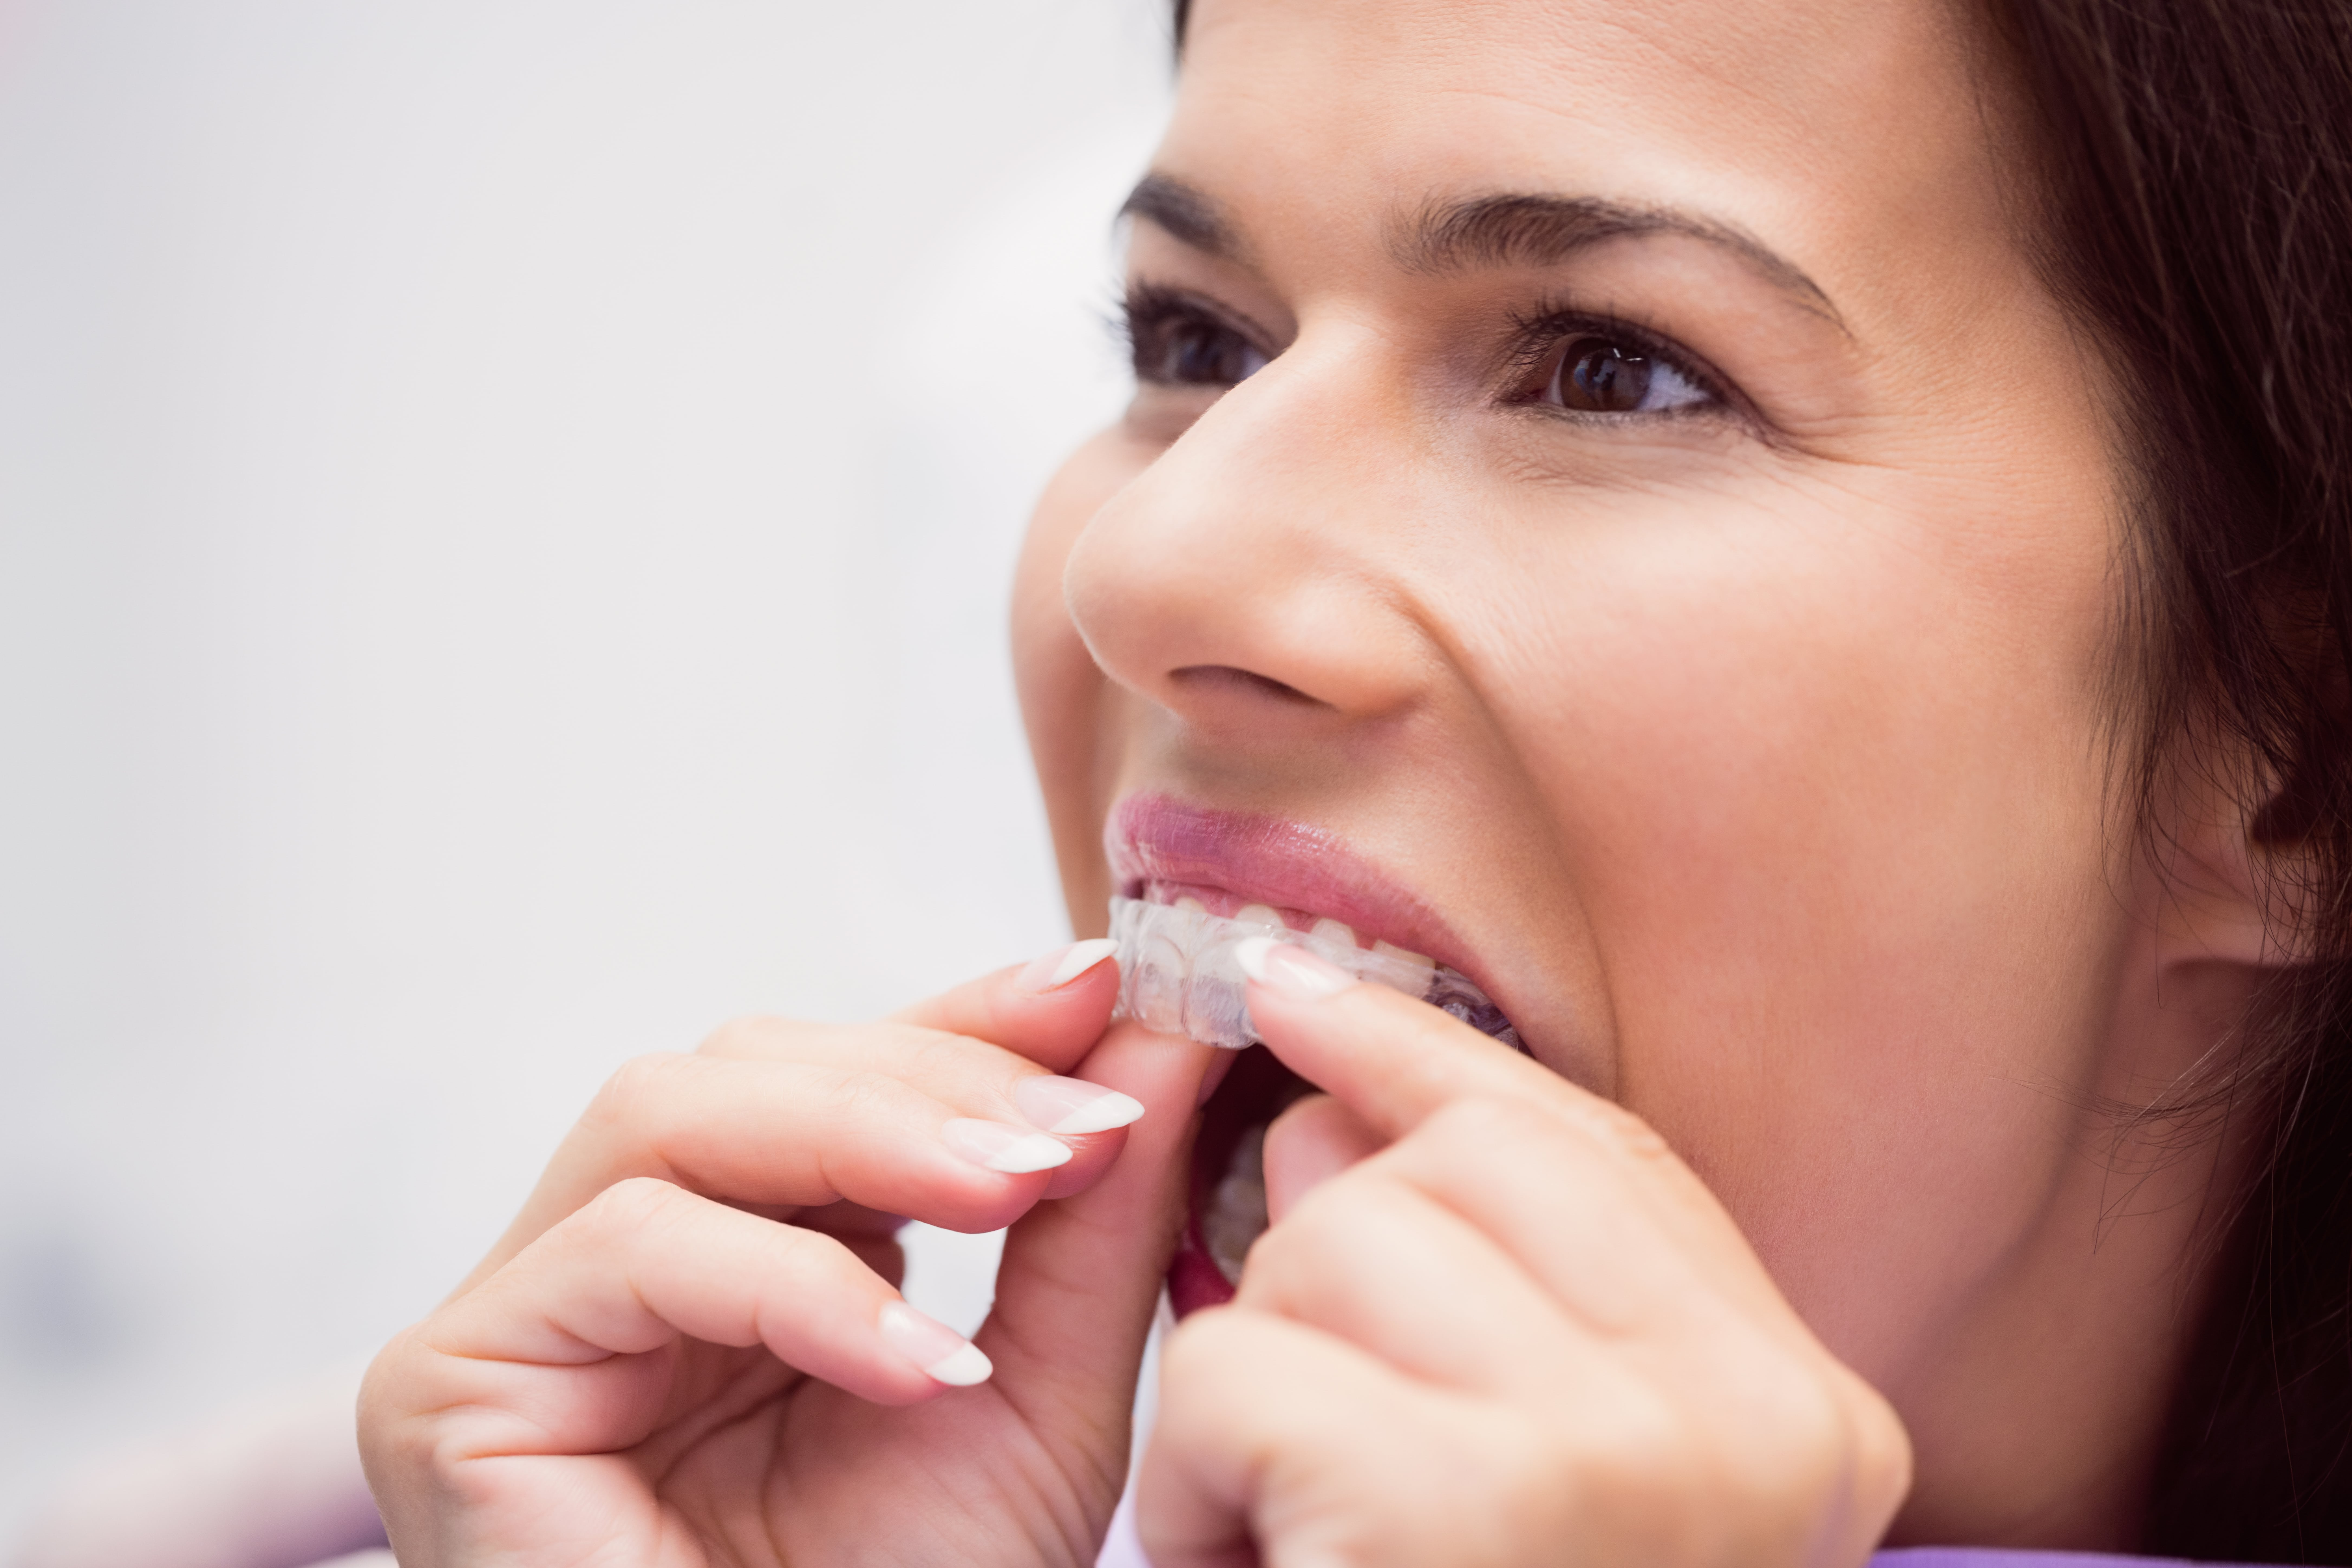 What Type of Braces Work the Fastest